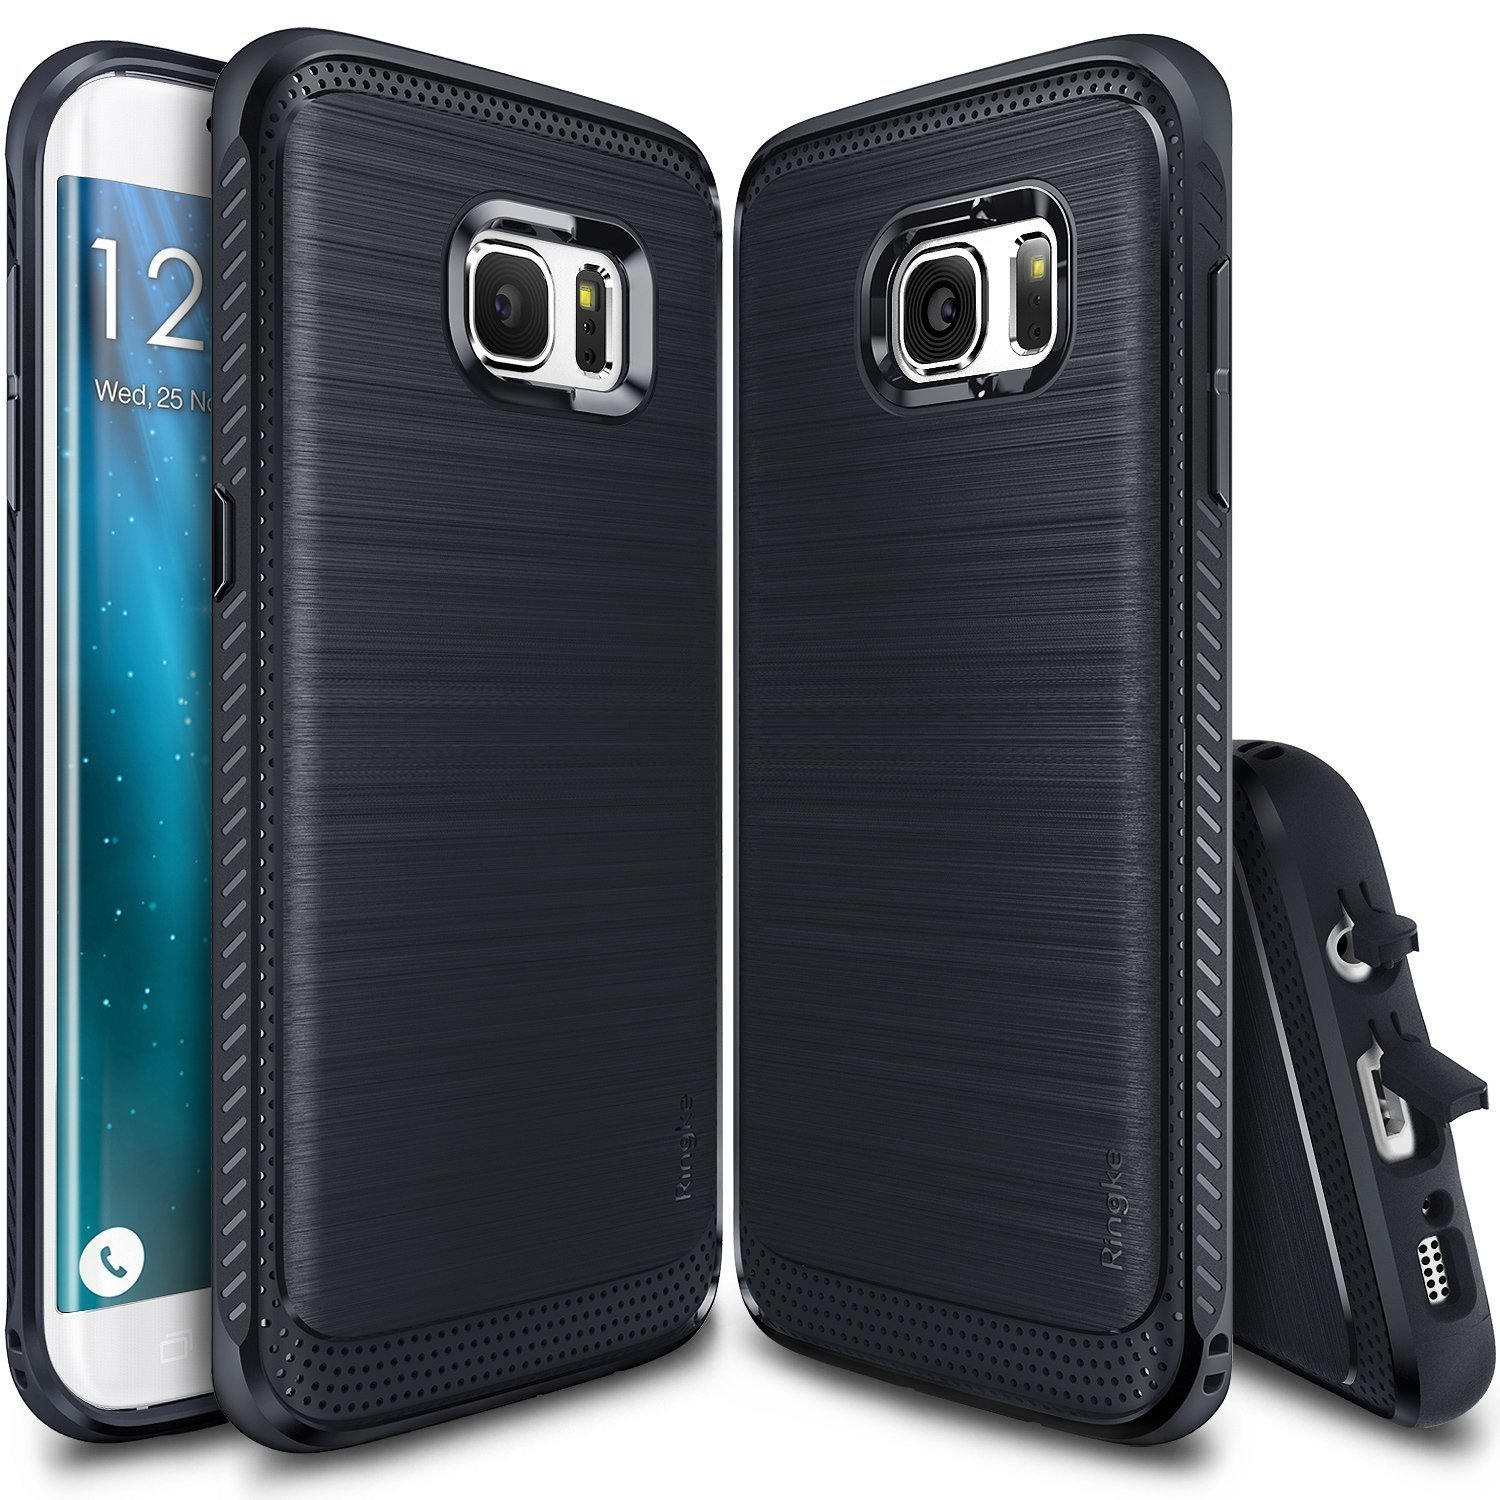 Samsung Galaxy S7 Edge Case, Ringke [Midnight Navy] ONYX Series Improved Strength Flexible TPU Defensive Case